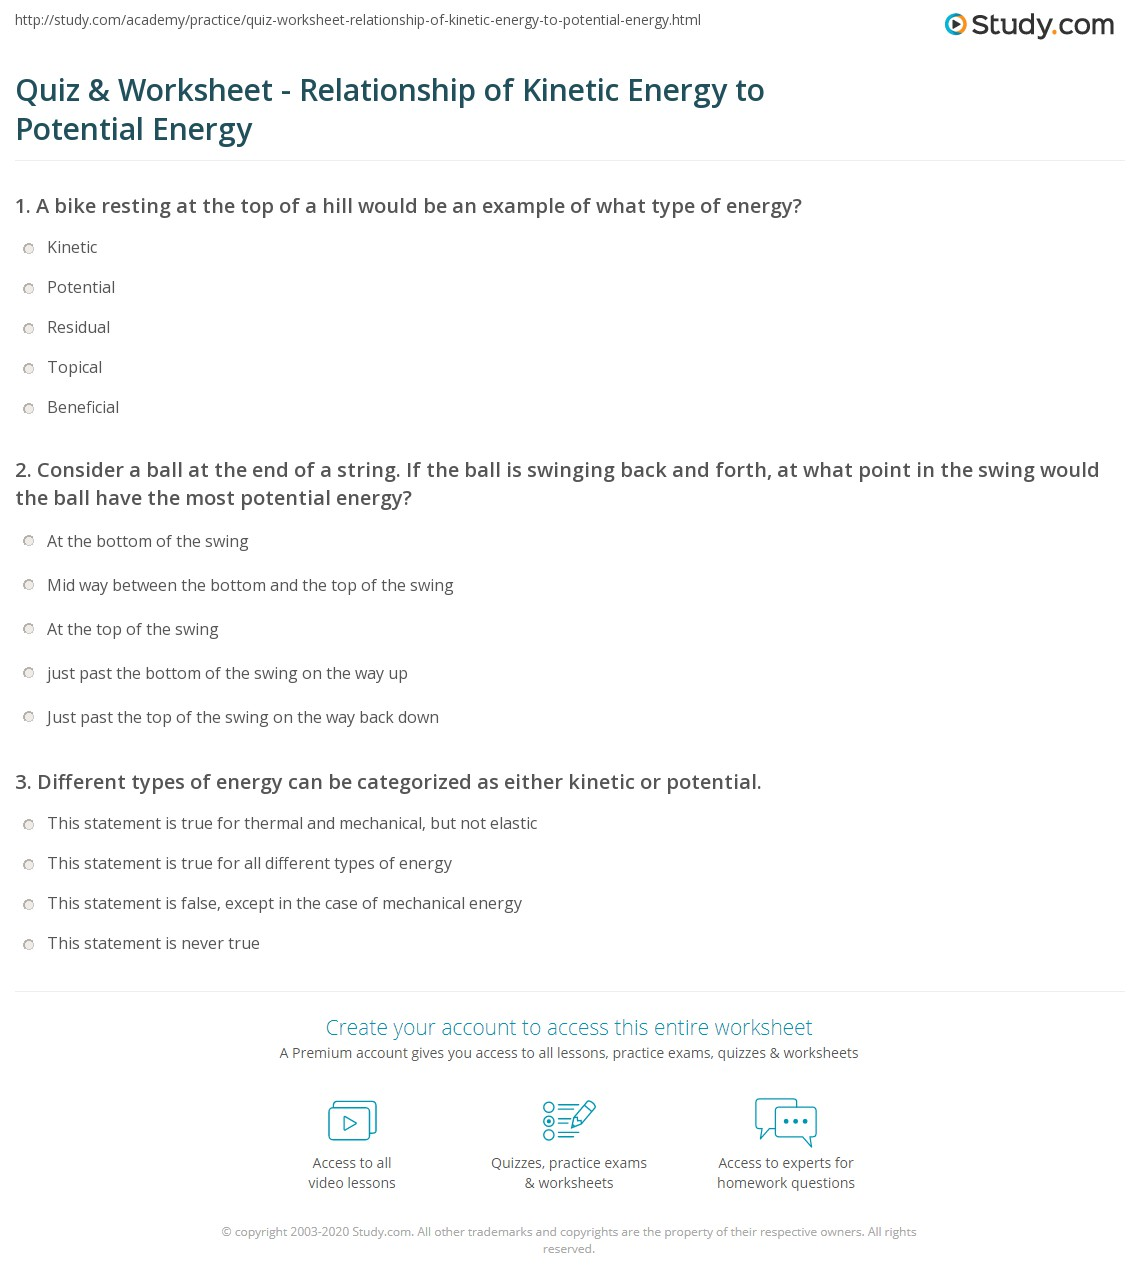 Quiz & Worksheet Relationship of Kinetic Energy to Potential